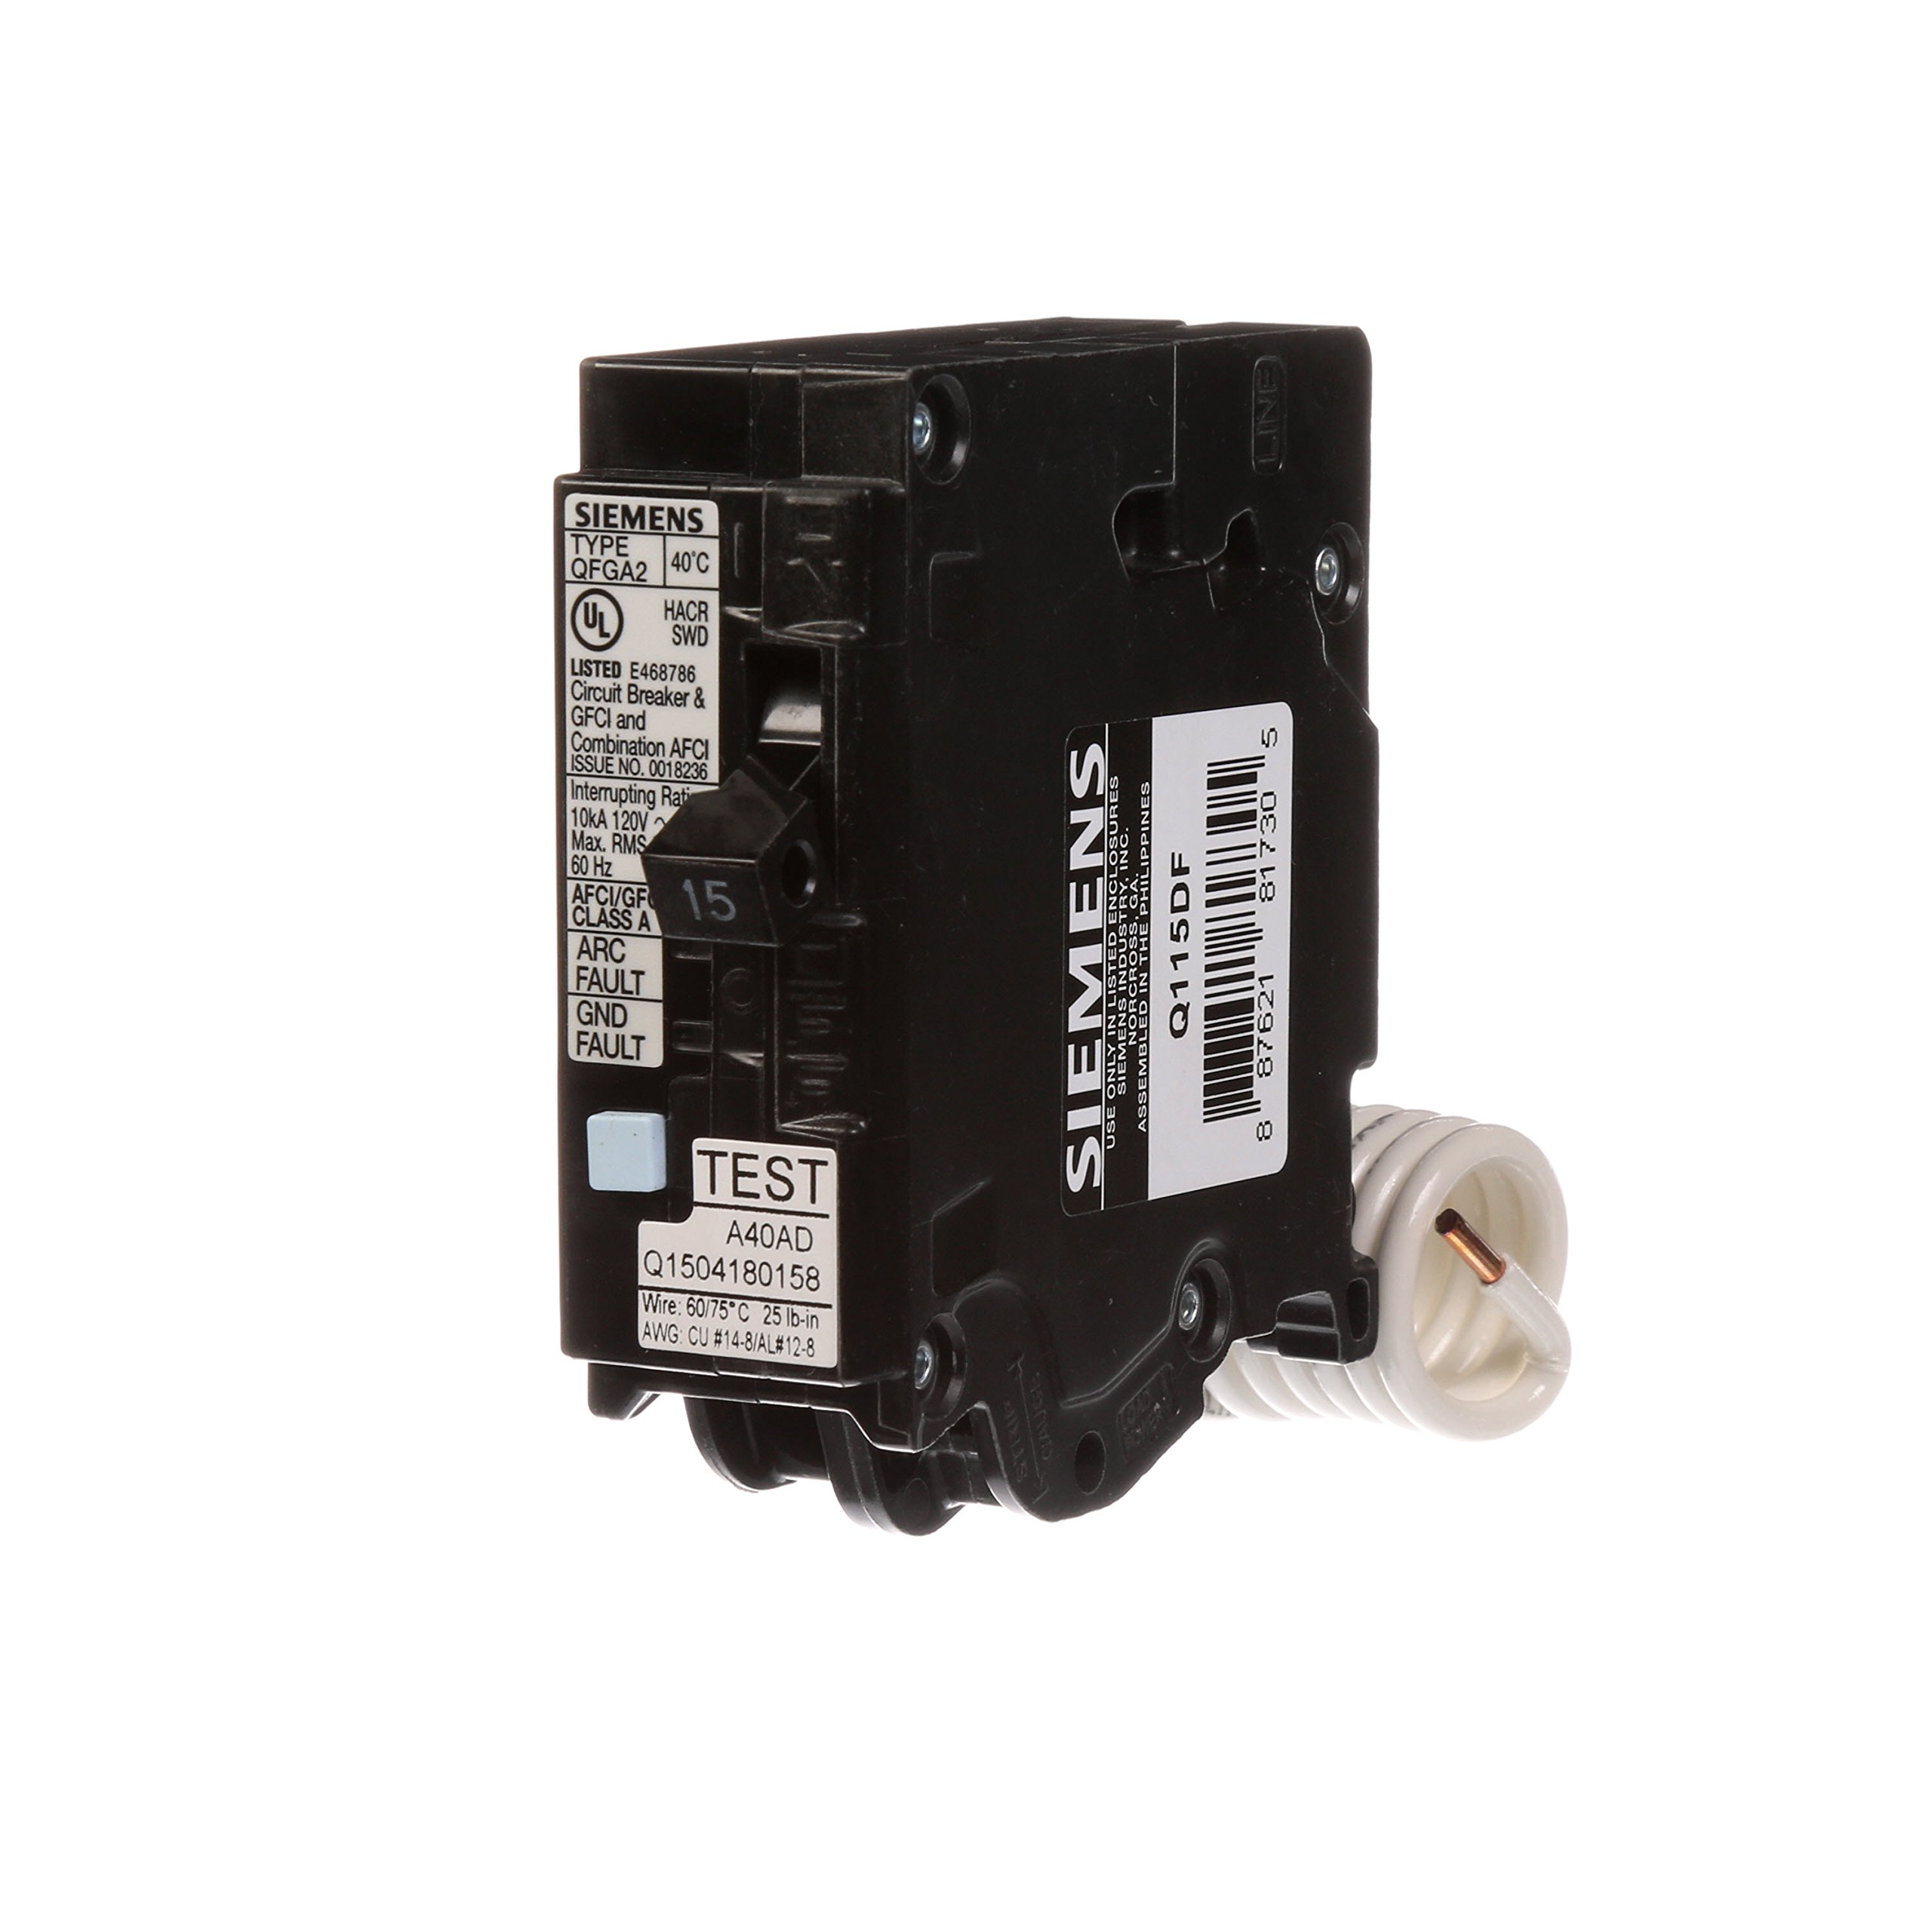 Siemens Q115DF  15-Amp Afci/Gfci Dual Function Circuit Breaker, Plug on Load Center Style